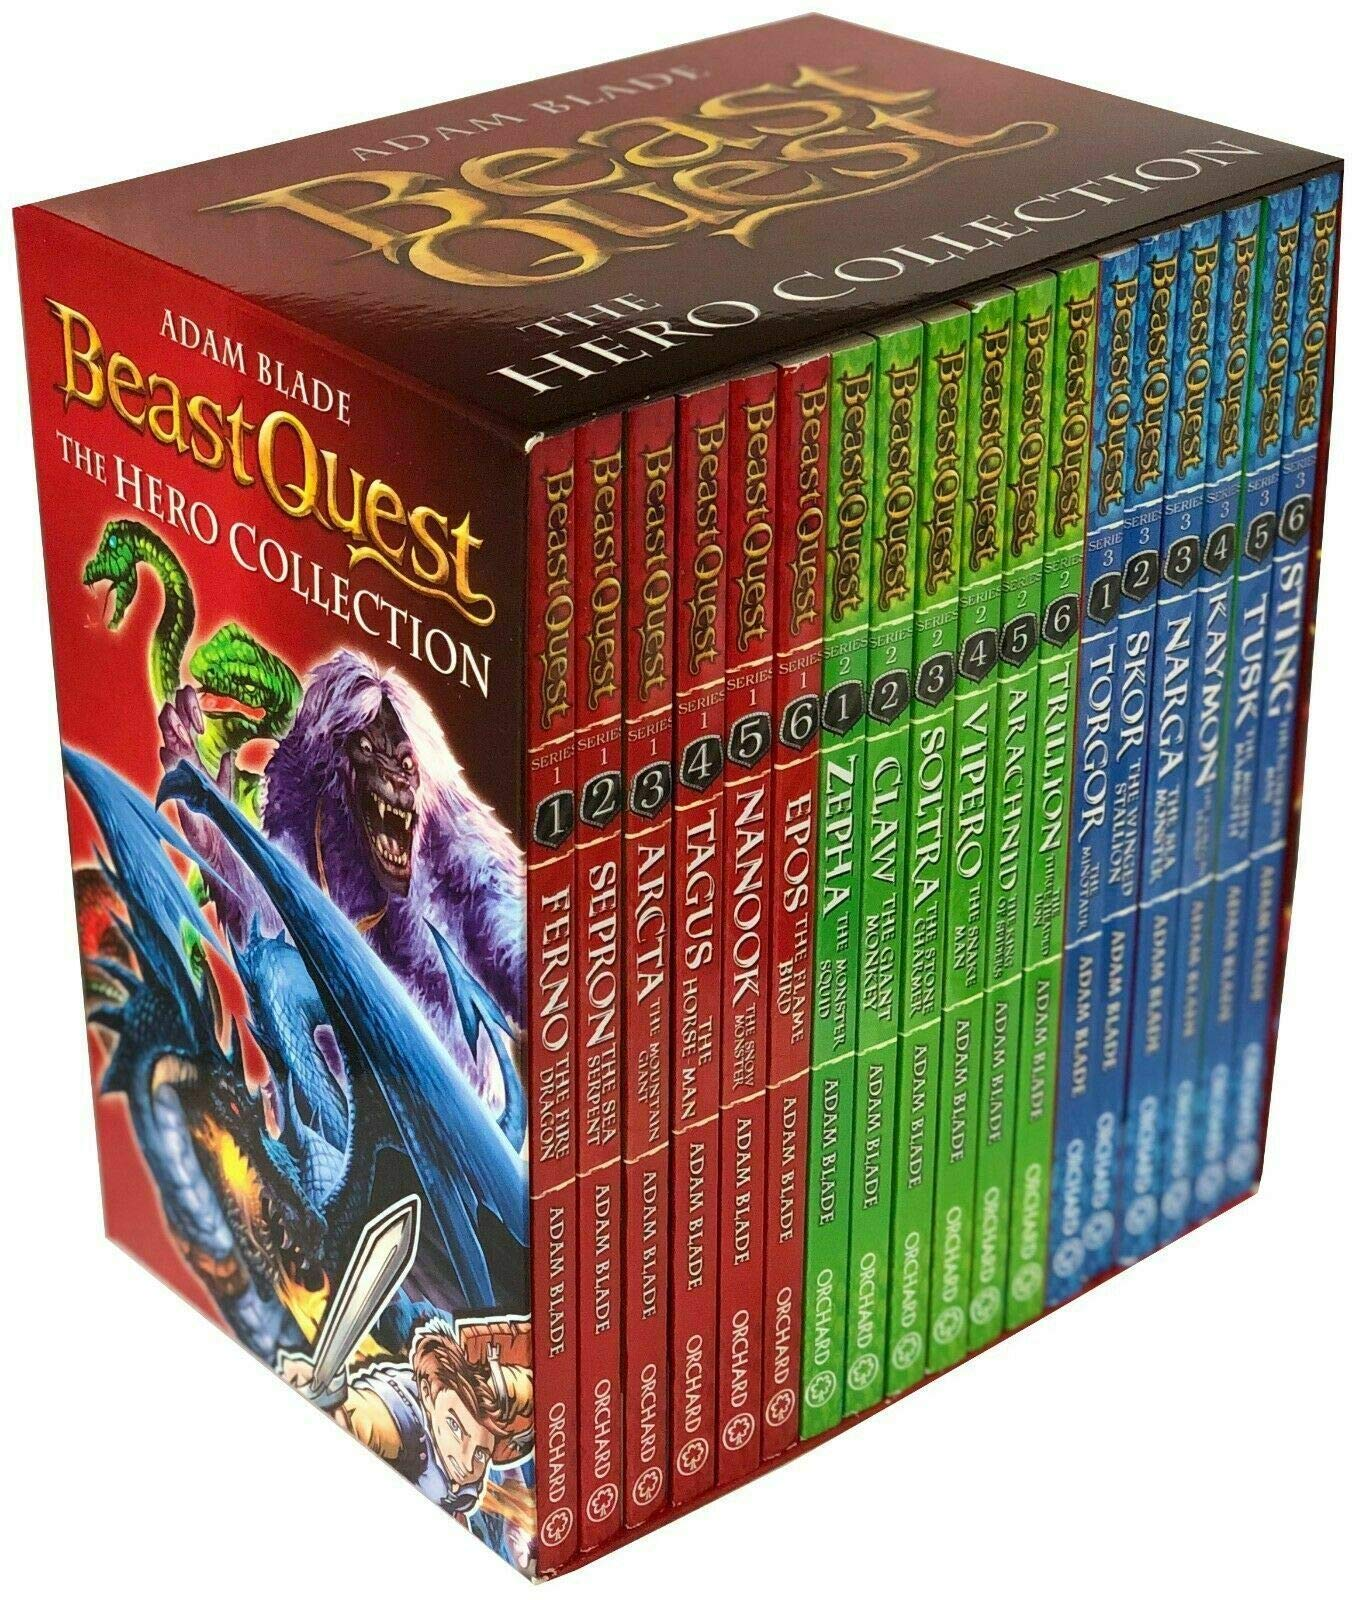 Beast Quest Series 1 2 And 3 18 Books Set Collection Amazon Co Uk Blade Adam 9781408316467 Books